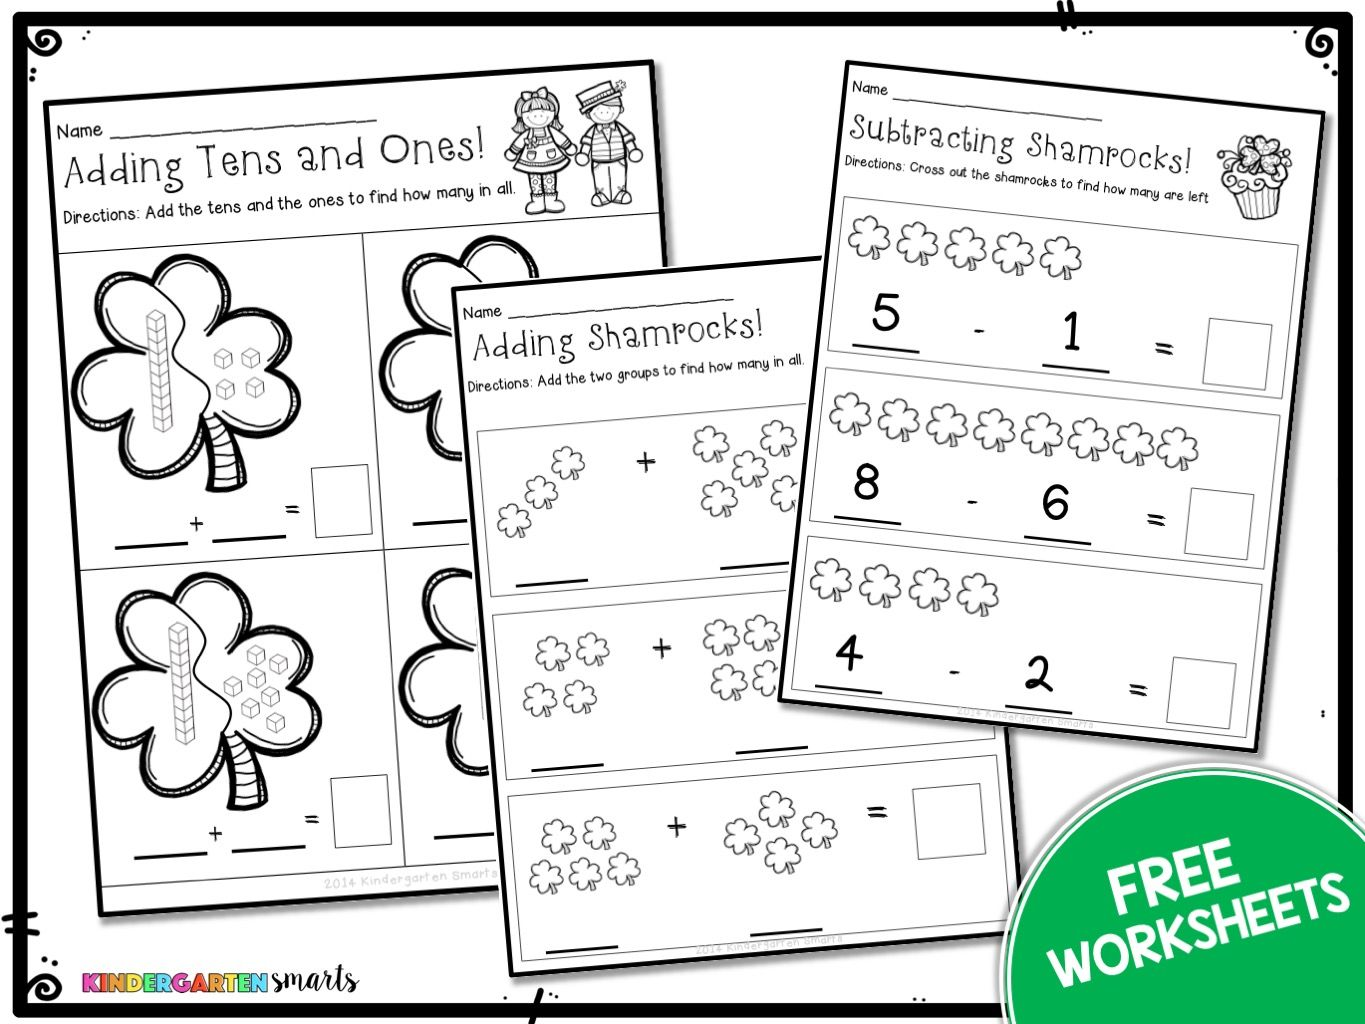 Kindergarten Math Worksheets St Patricks Day With A